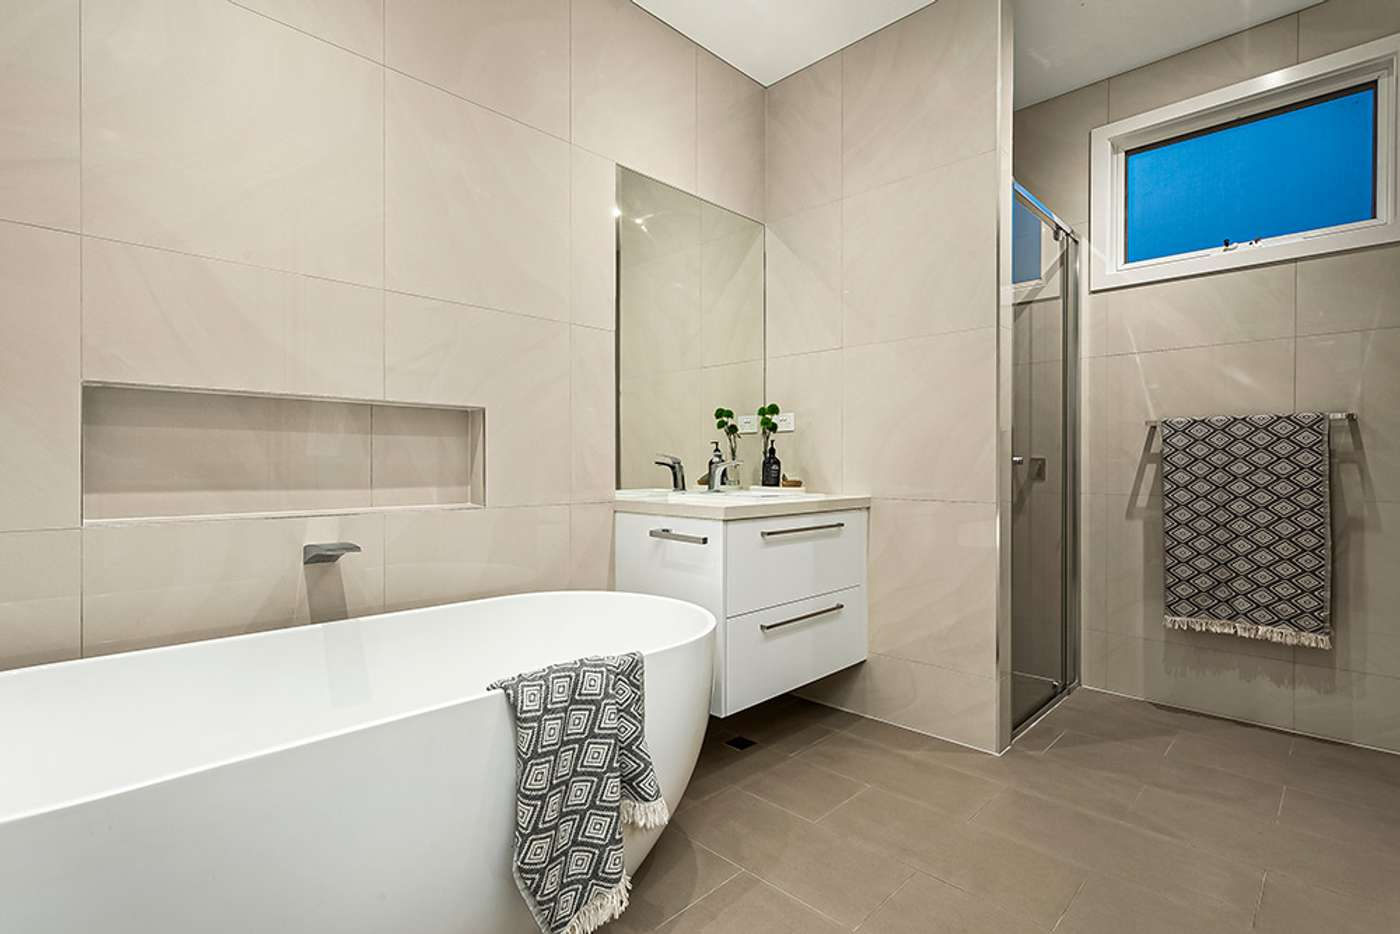 Sixth view of Homely house listing, 80 Albert Street, Williamstown VIC 3016